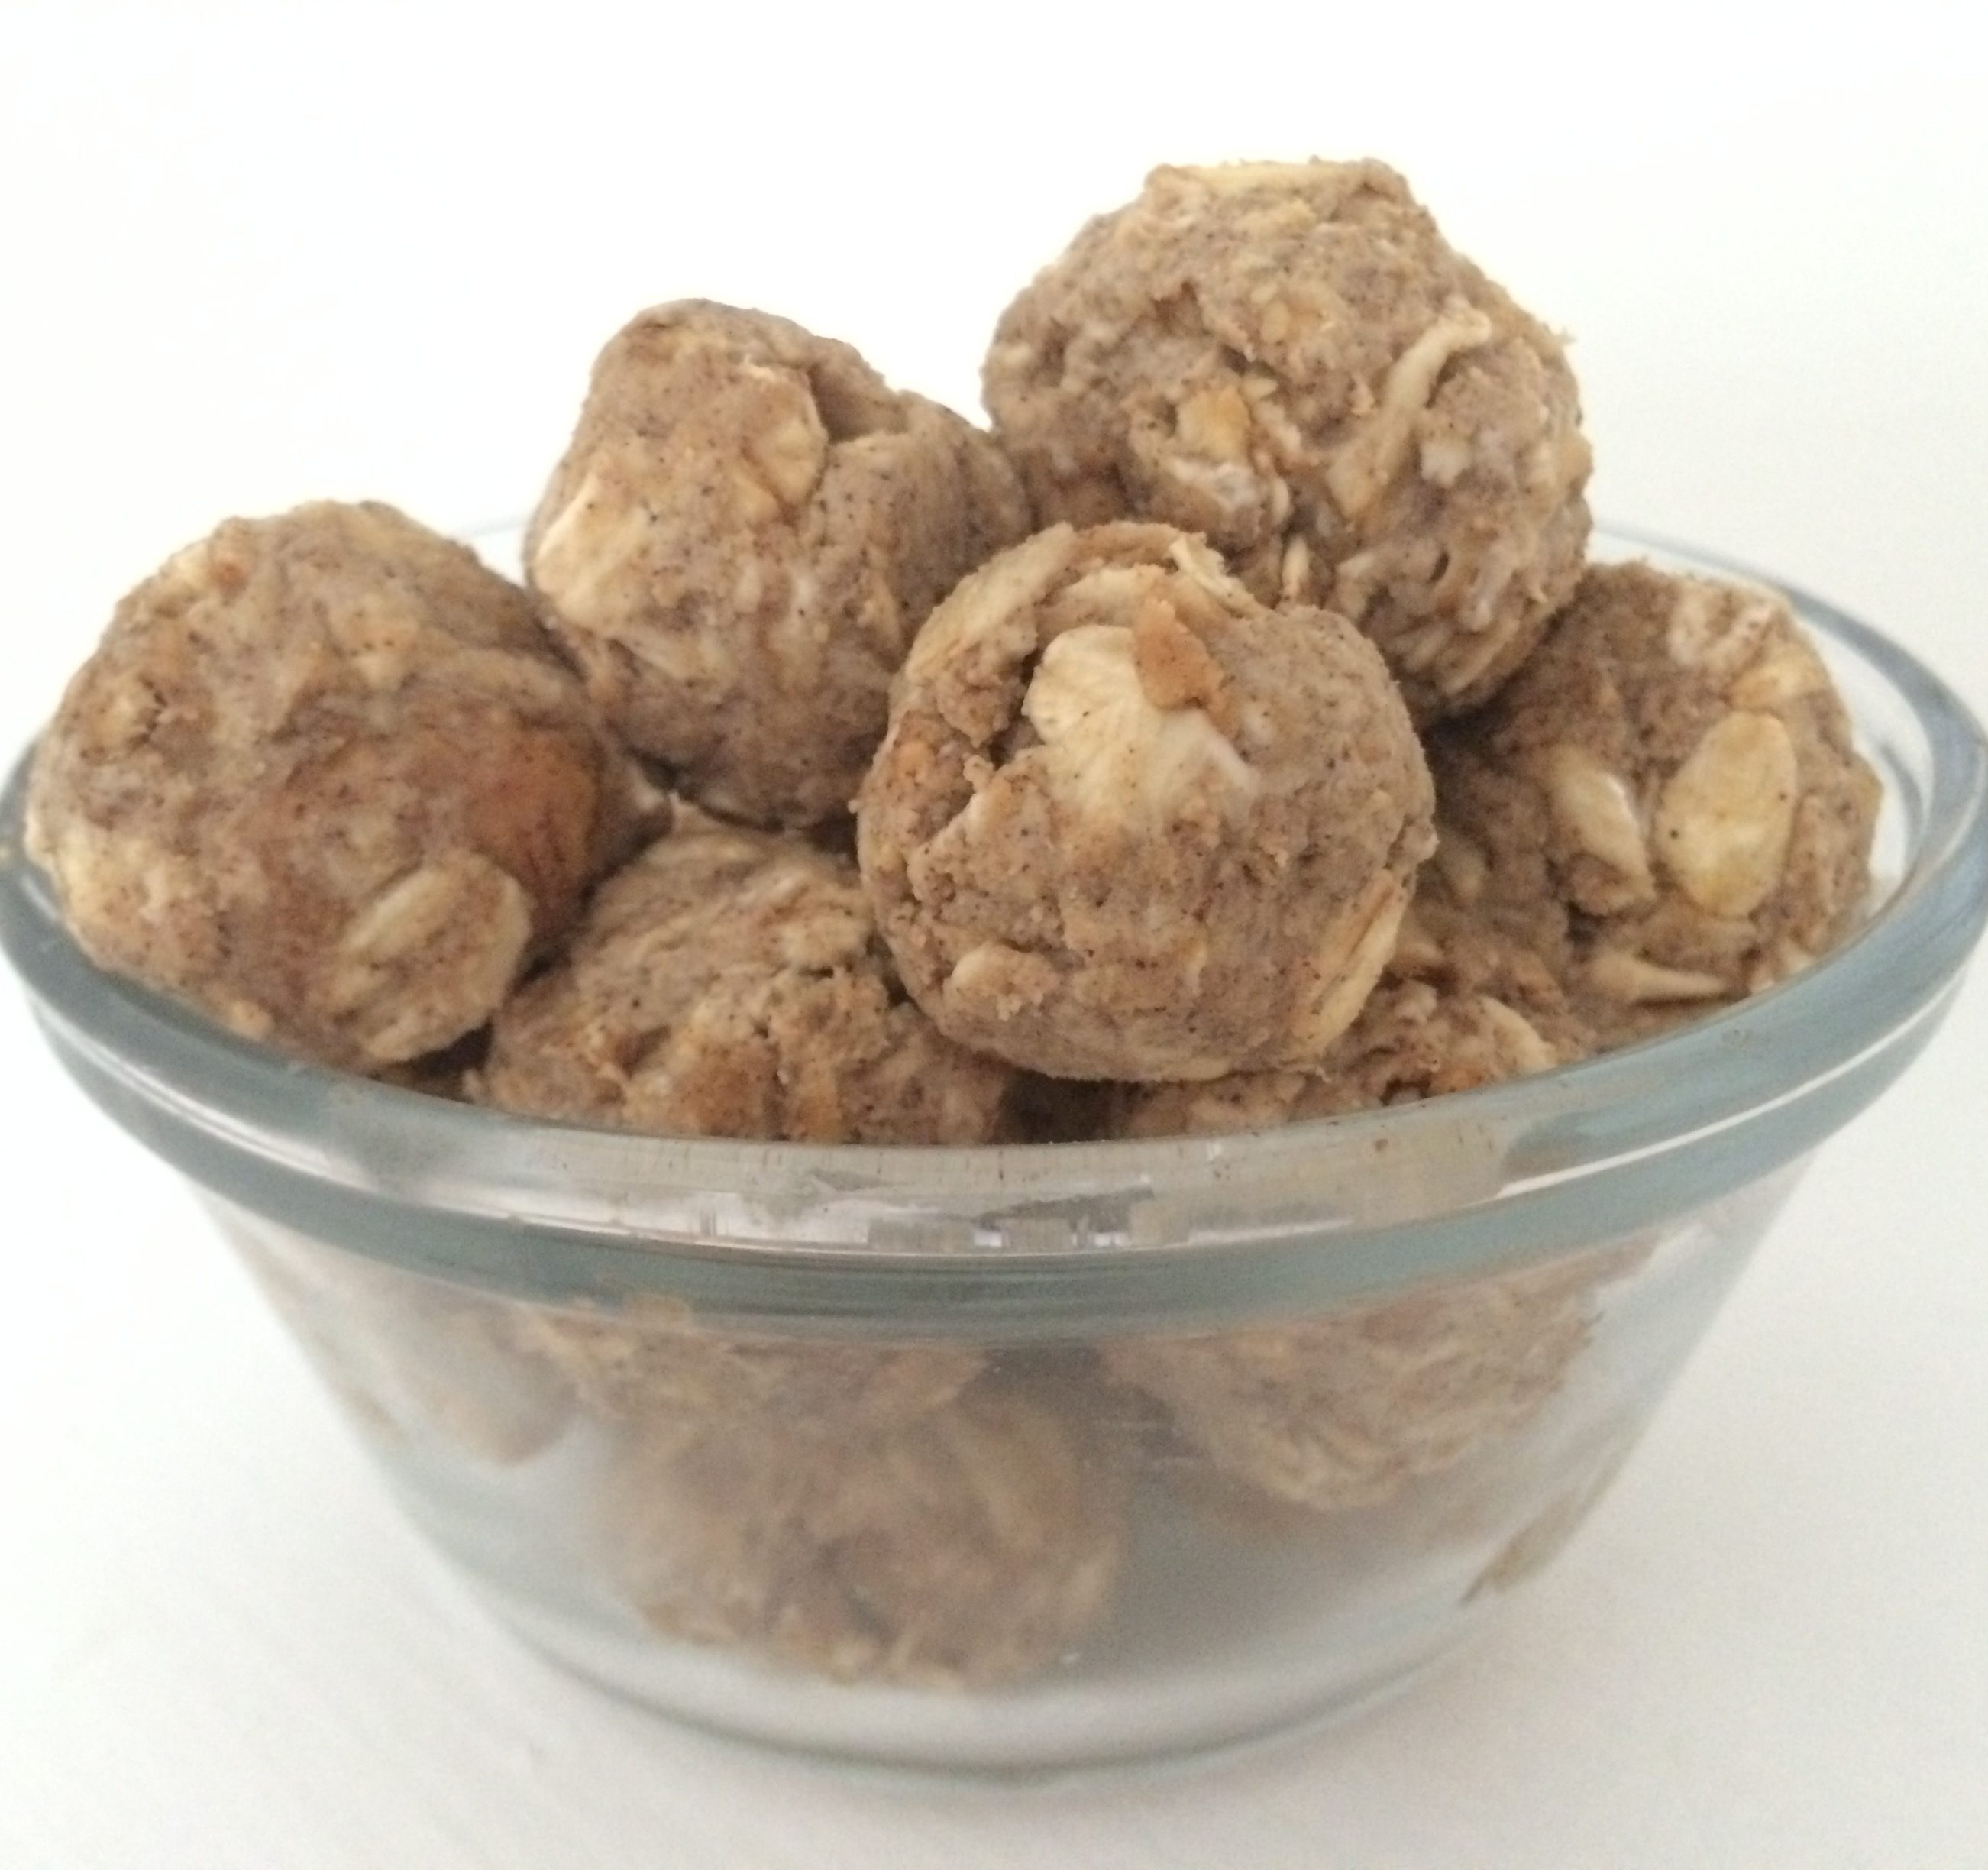 oatmeal peanut butter protein balls and a dash of cinnamon